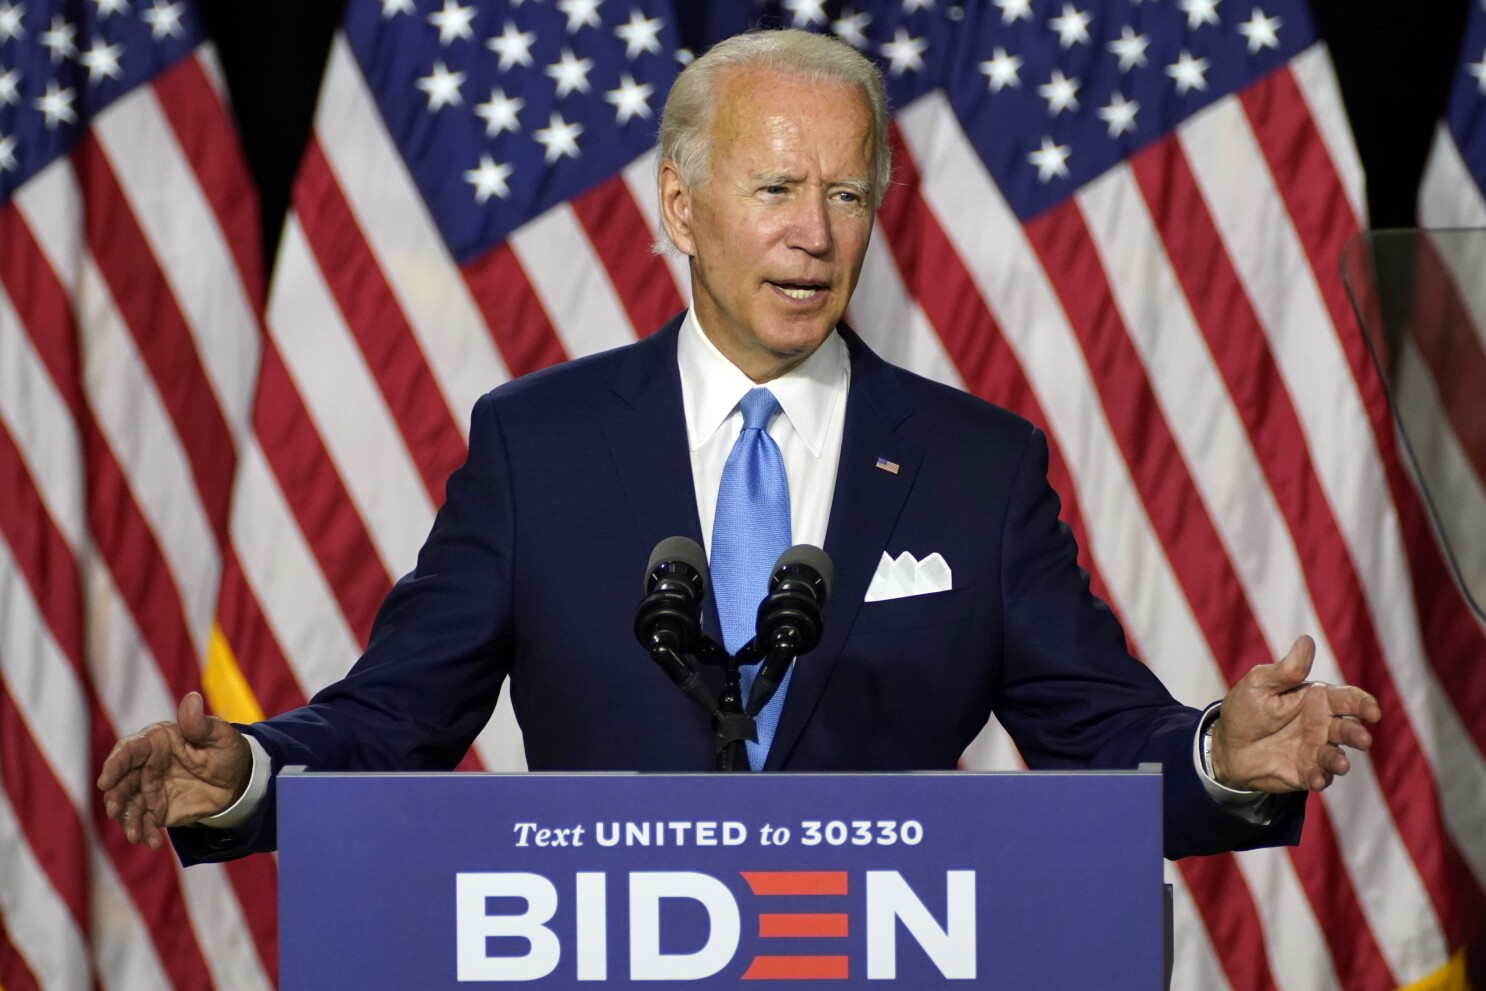 Dnc Joe Biden Closes In On Quest For Presidential Nomination The San Diego Union Tribune